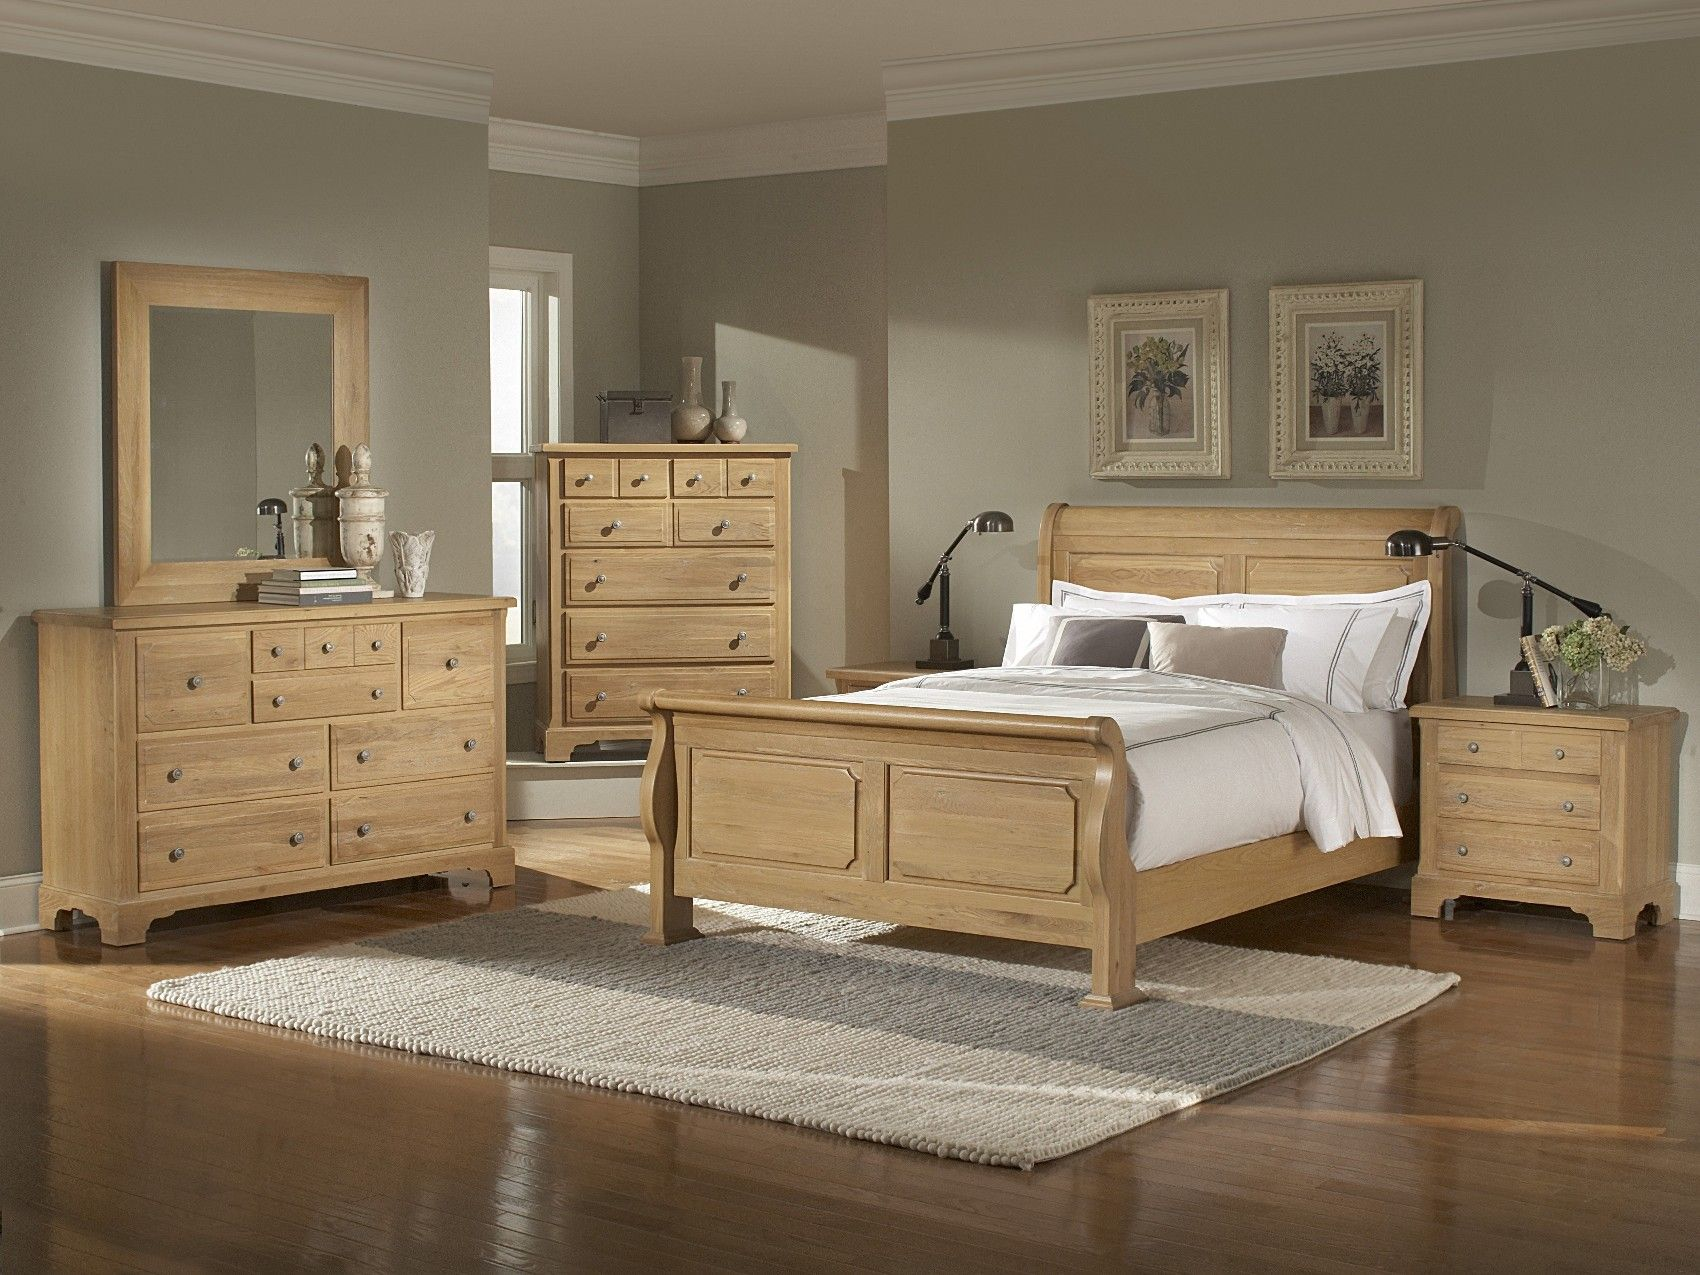 Light Oak Bedroom Furniture Bing Images Oak Bedroom Furniture Sets Light Oak Bedroom Furniture Brown Furniture Bedroom